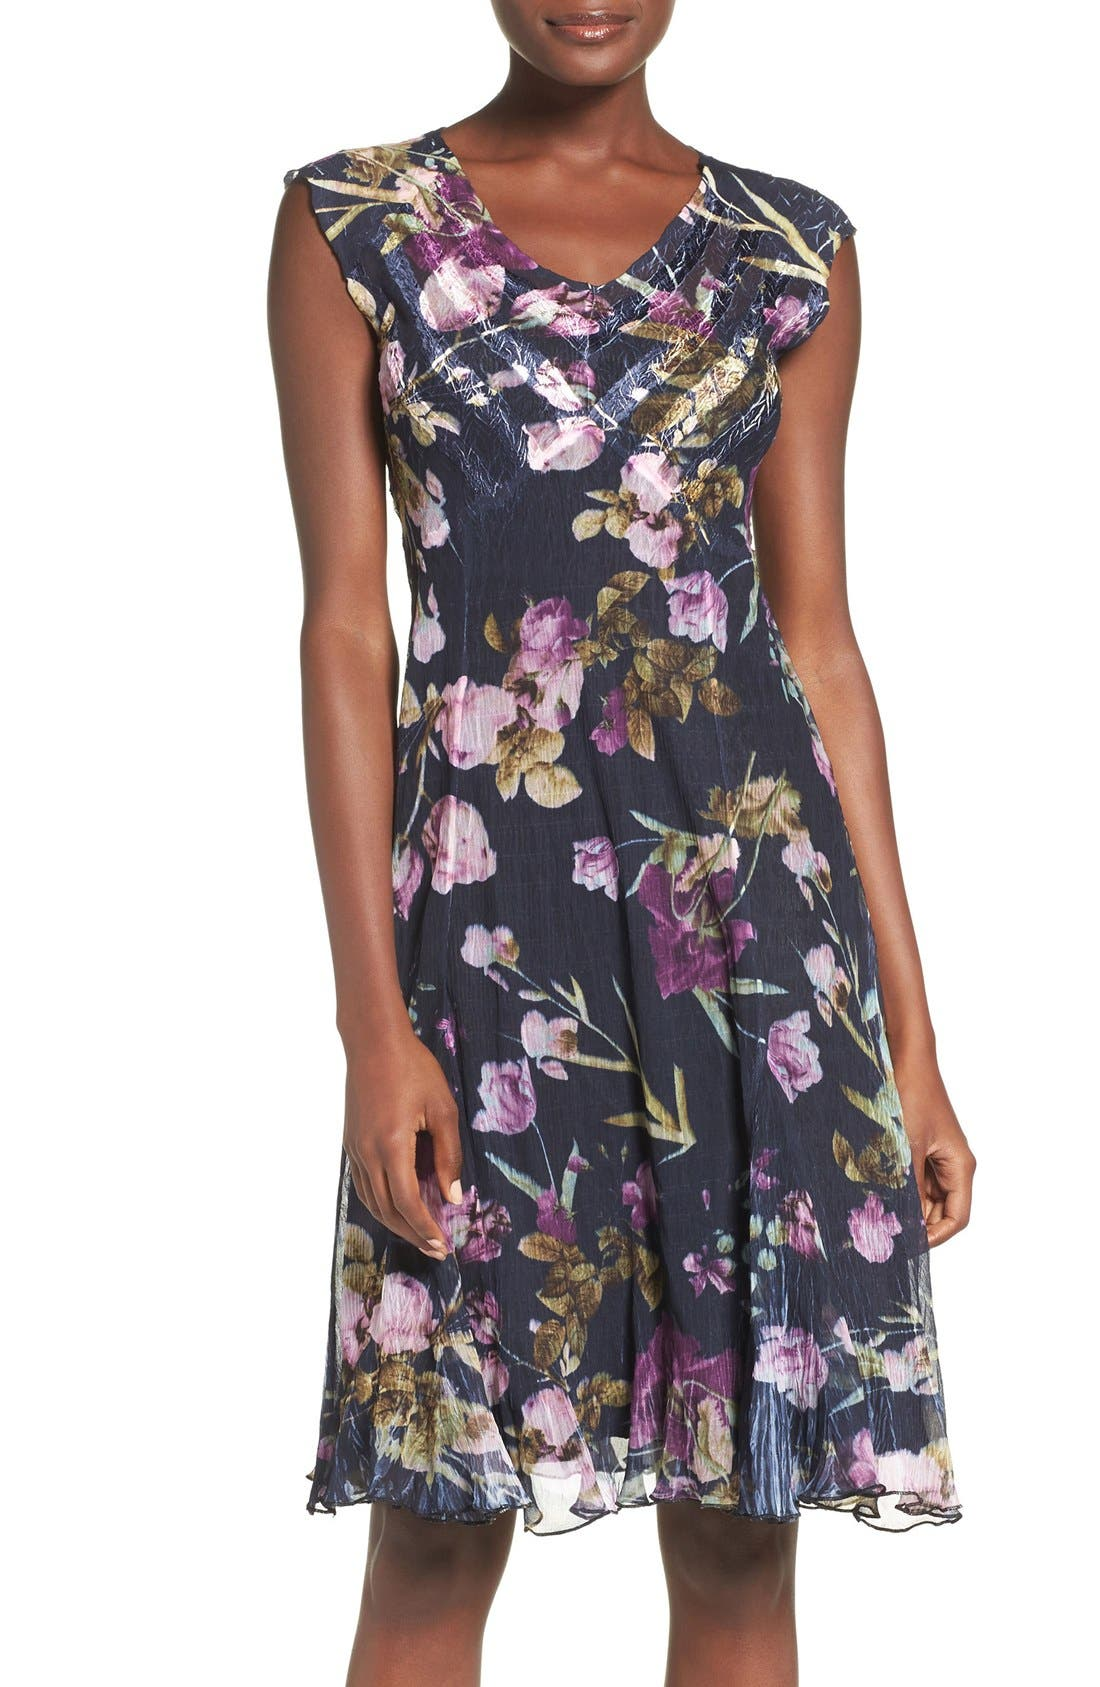 Alternate Image 1 Selected - Komarov Floral Print Chiffon A-Line Dress (Regular & Petite)